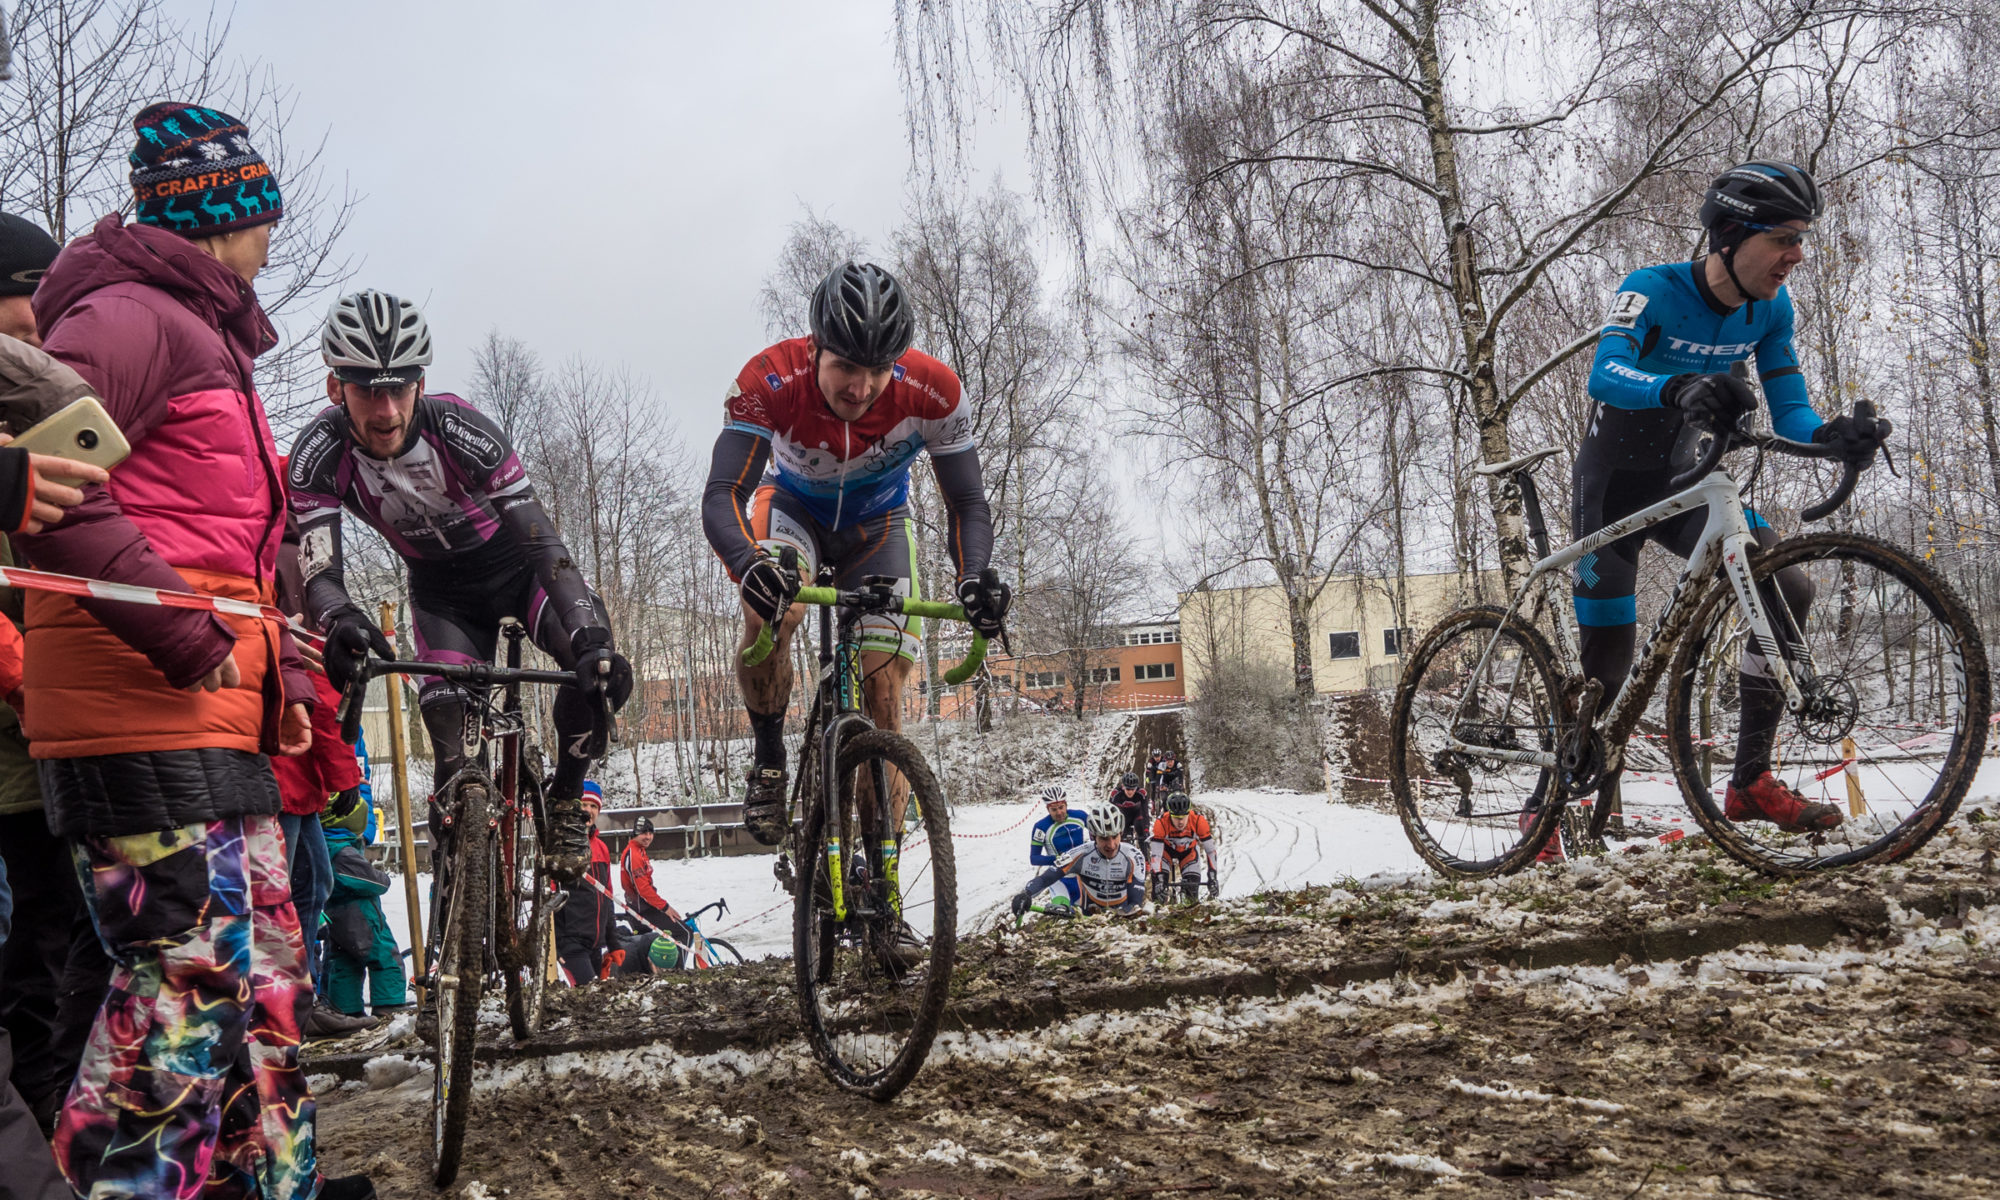 BioRacer Cross Serie